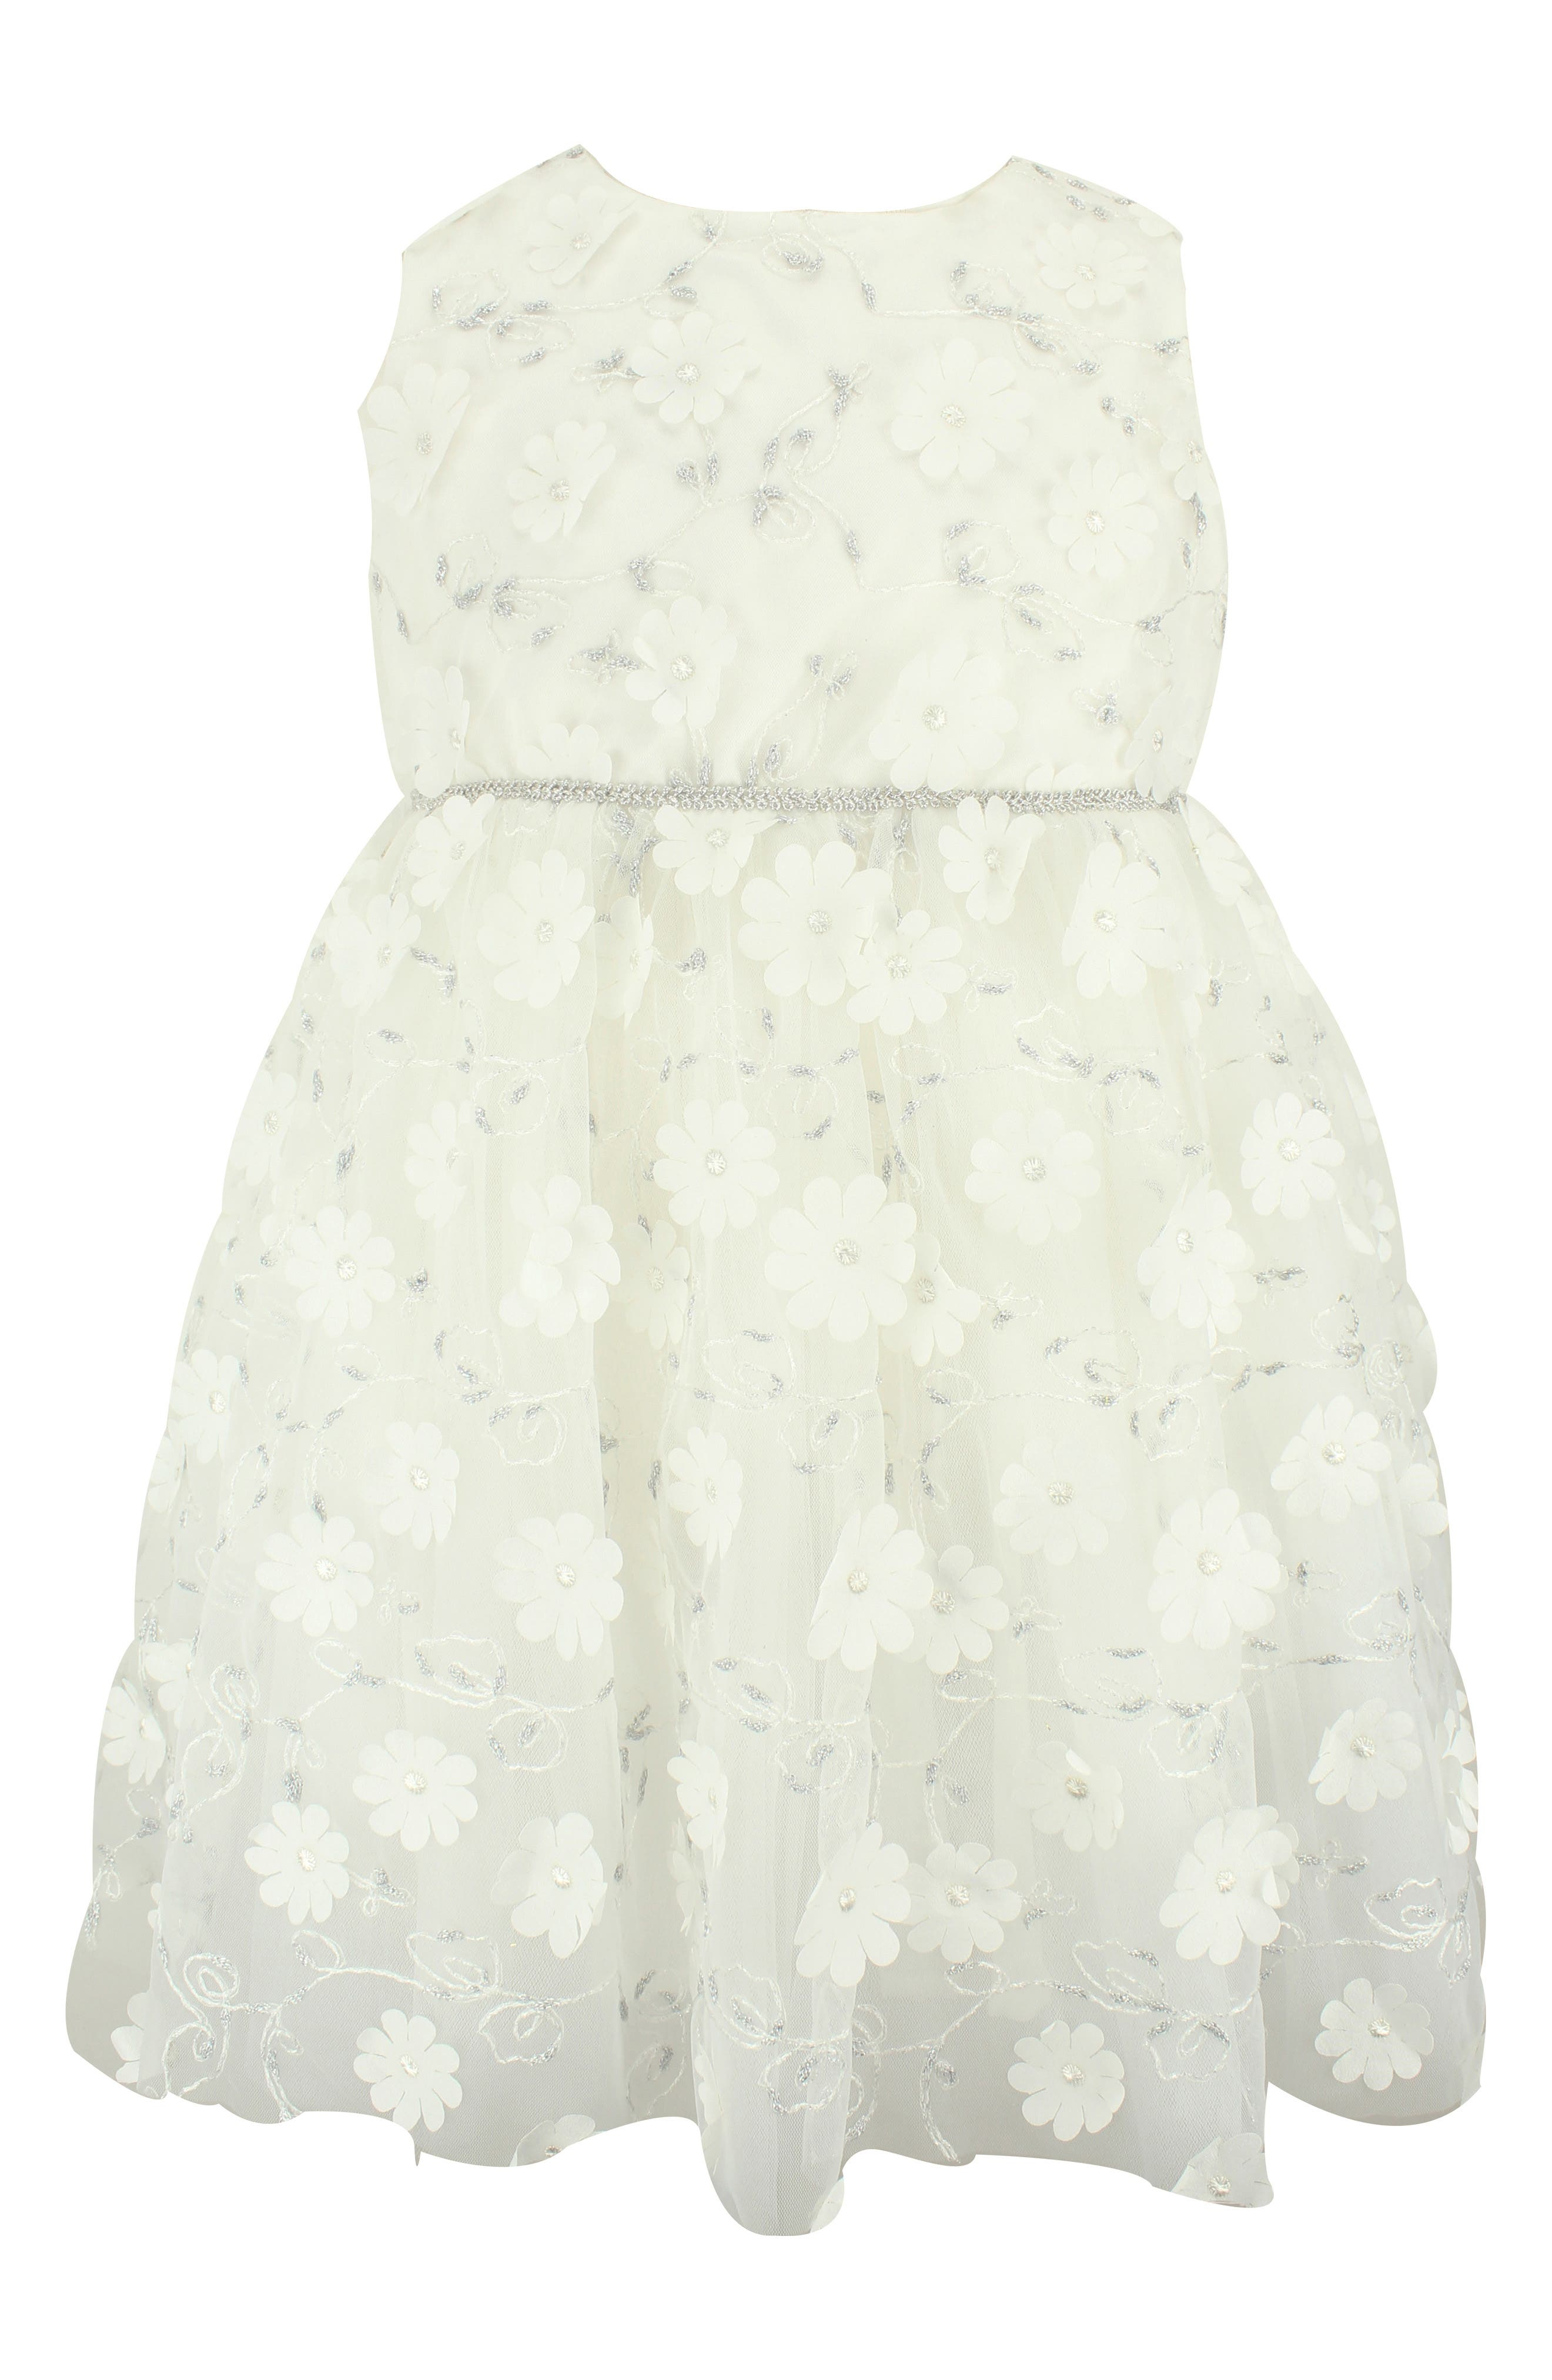 d61a491582aa0 Flower Girl Dresses & Accessories | Nordstrom